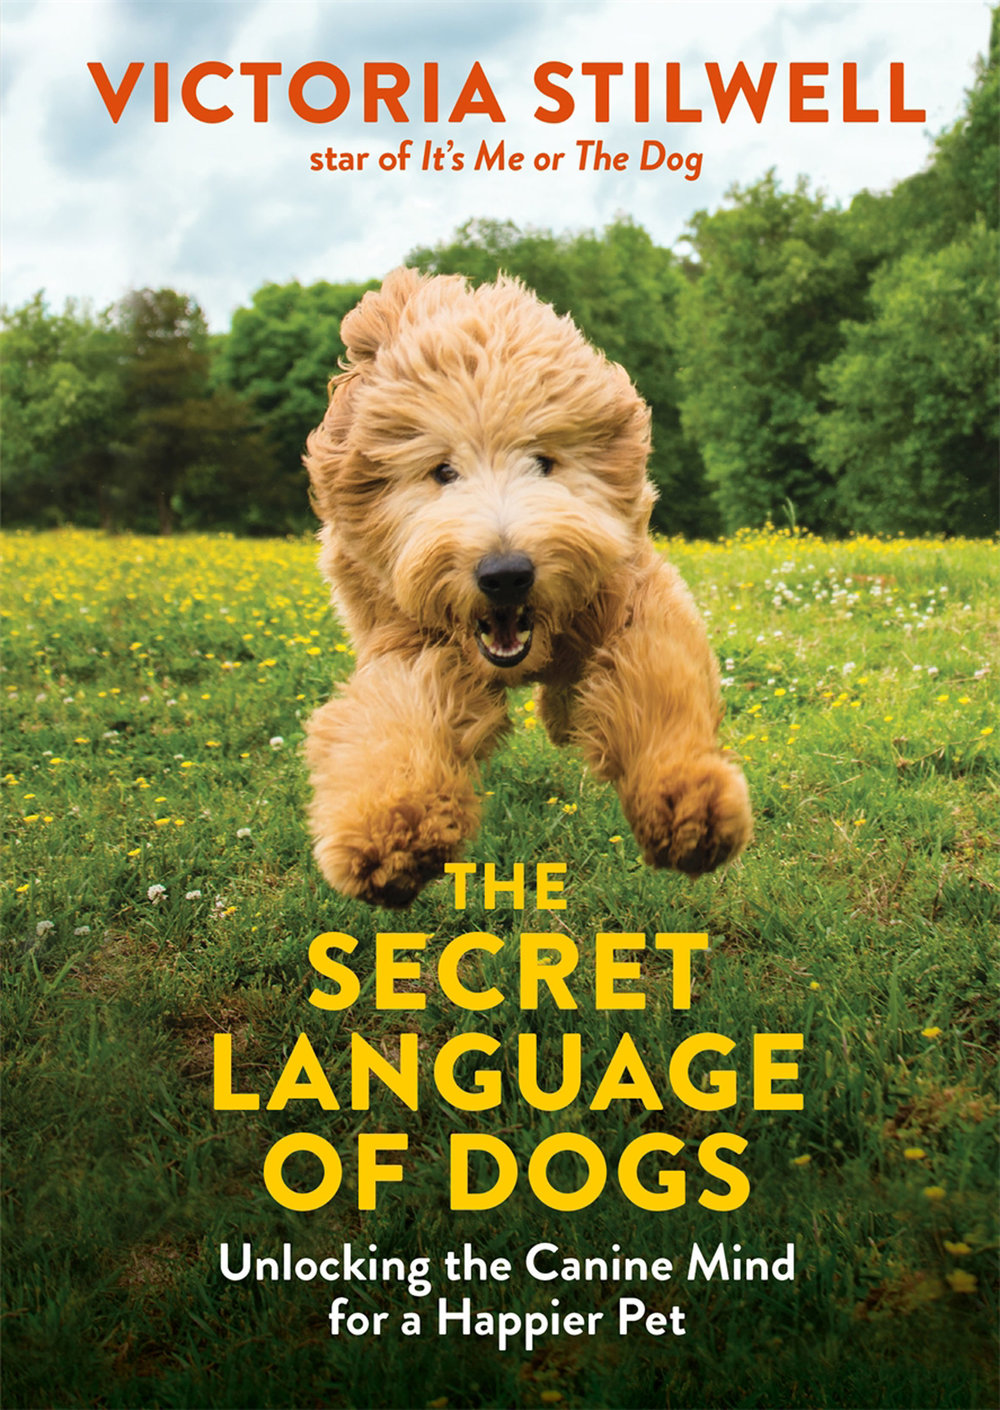 The Secret Language Of Dogs: Unlocking The Canine Mind For A Happier Pet  by Victoria Stilwell is available now